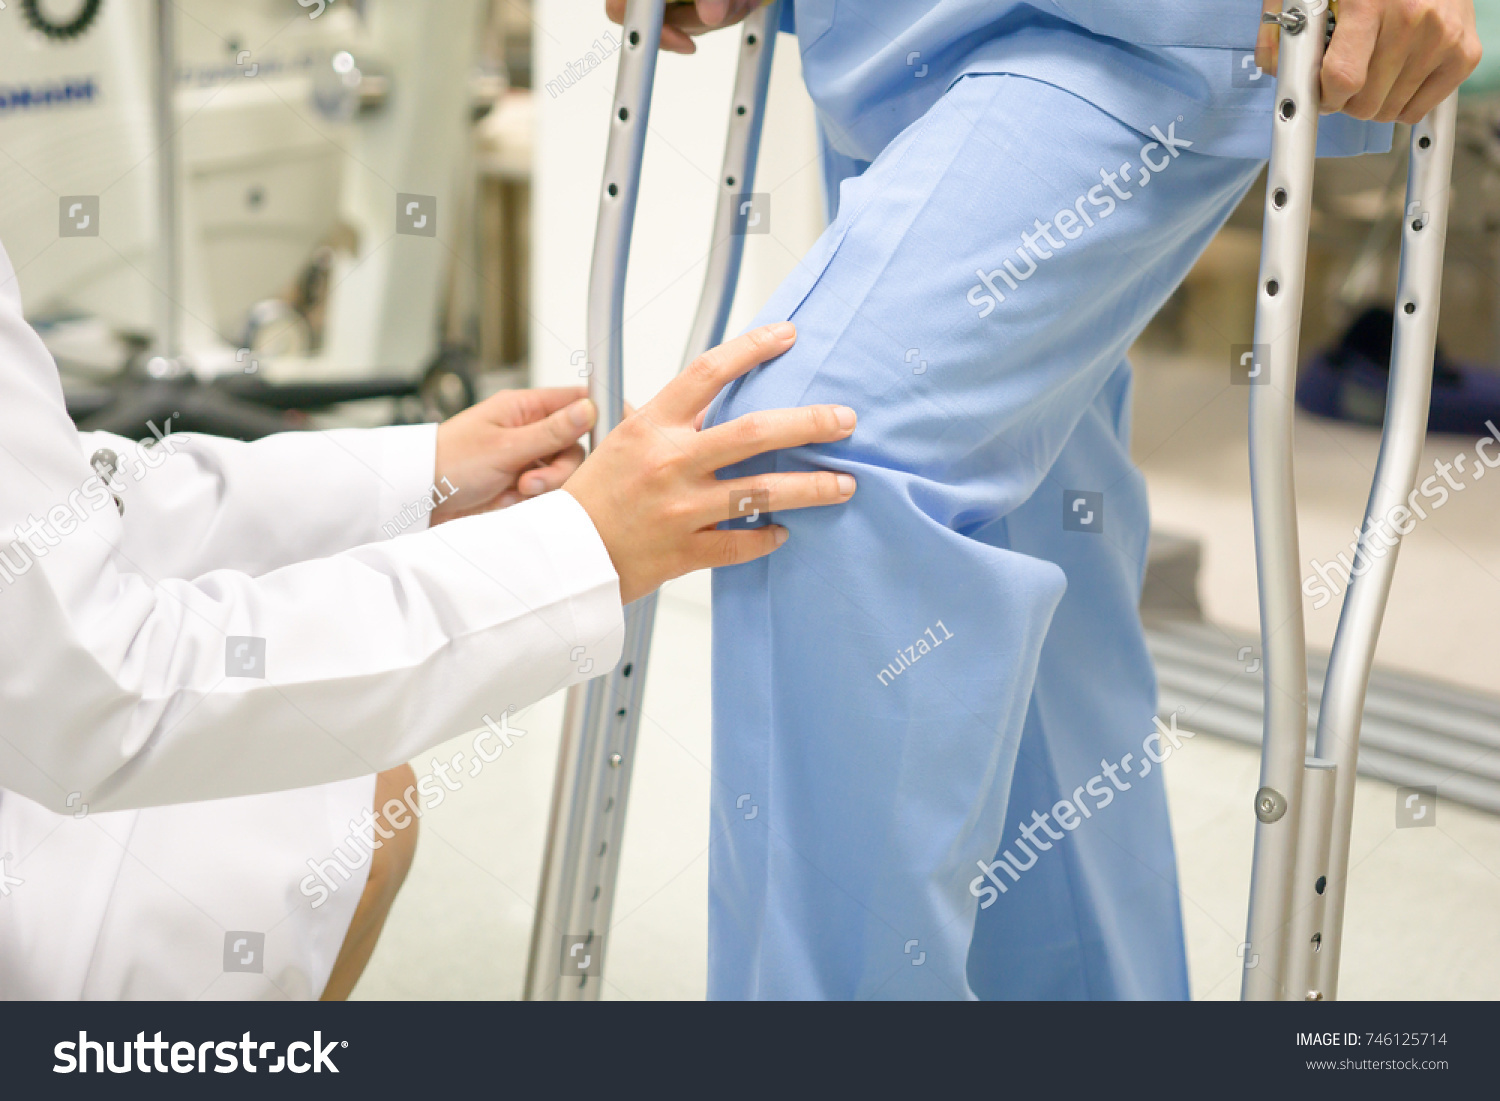 Medical and healthcare concept, Doctor is checking the patient's knee symptoms. #746125714